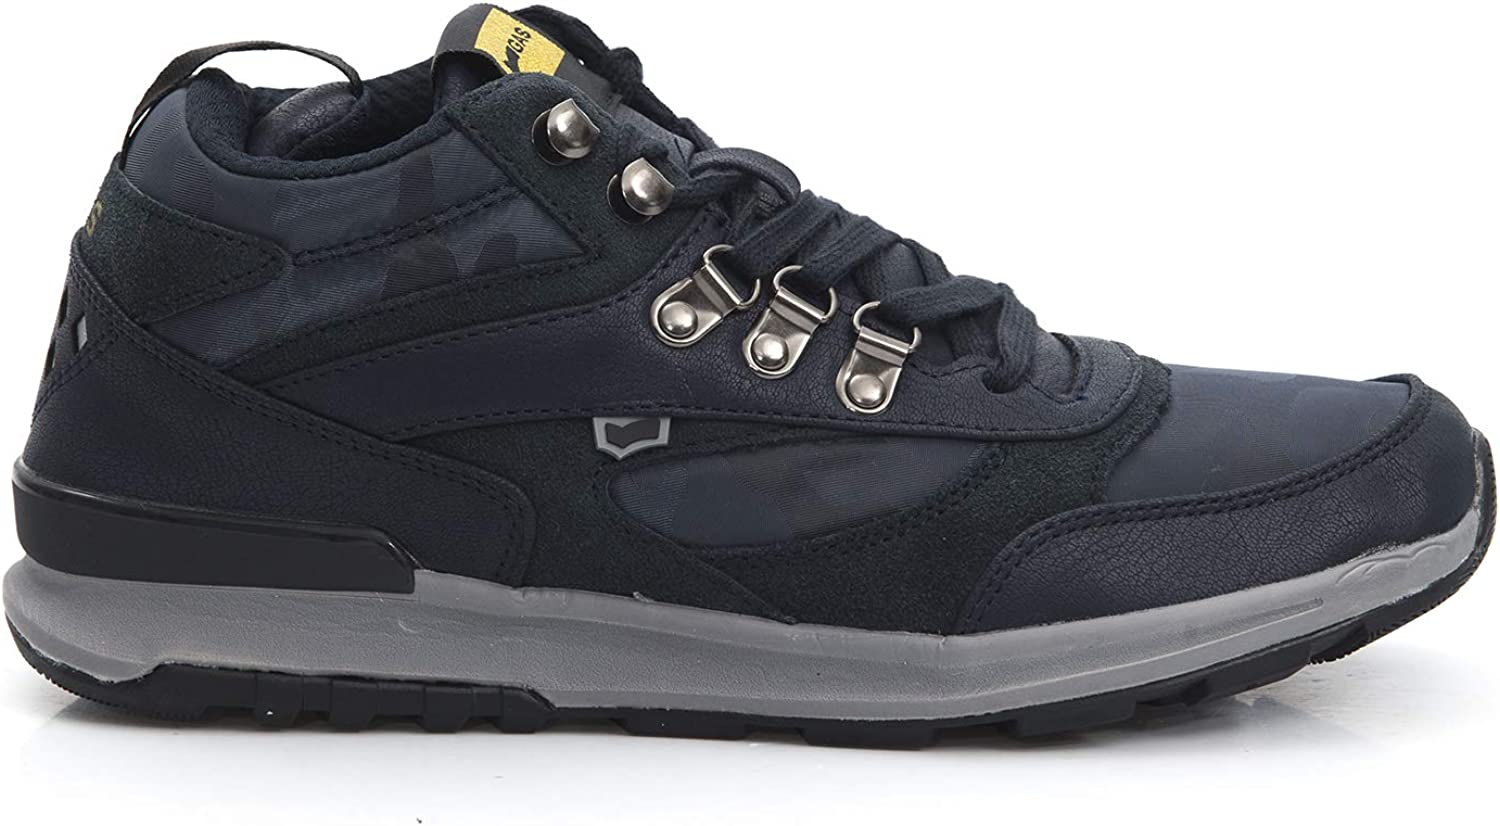 GAS shoes Sneakers Coco Vis Camu Man